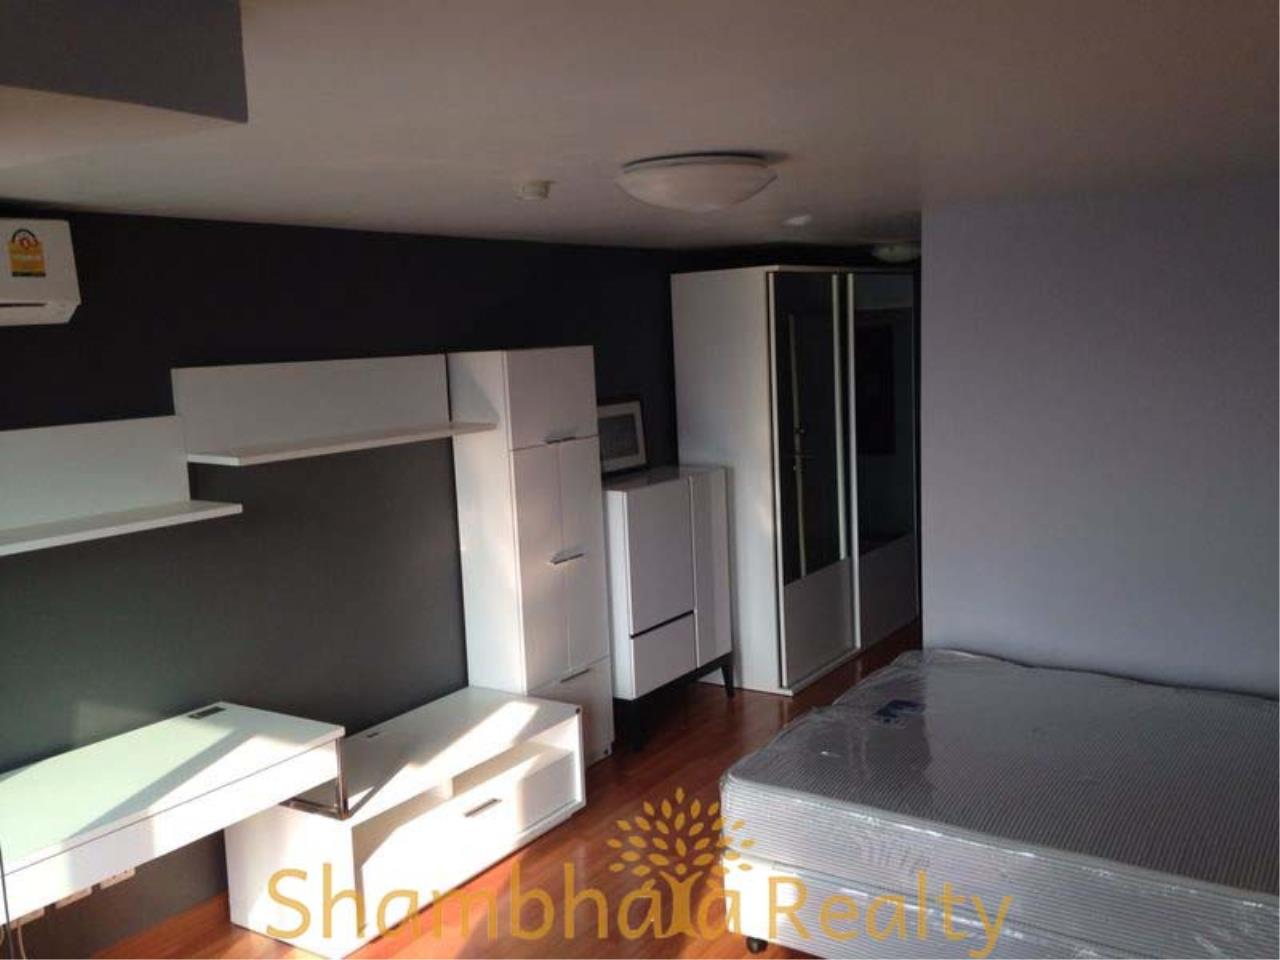 Shambhala Realty Agency's Chateau In Town Condominium for Sale in Ratchada soi 13 1